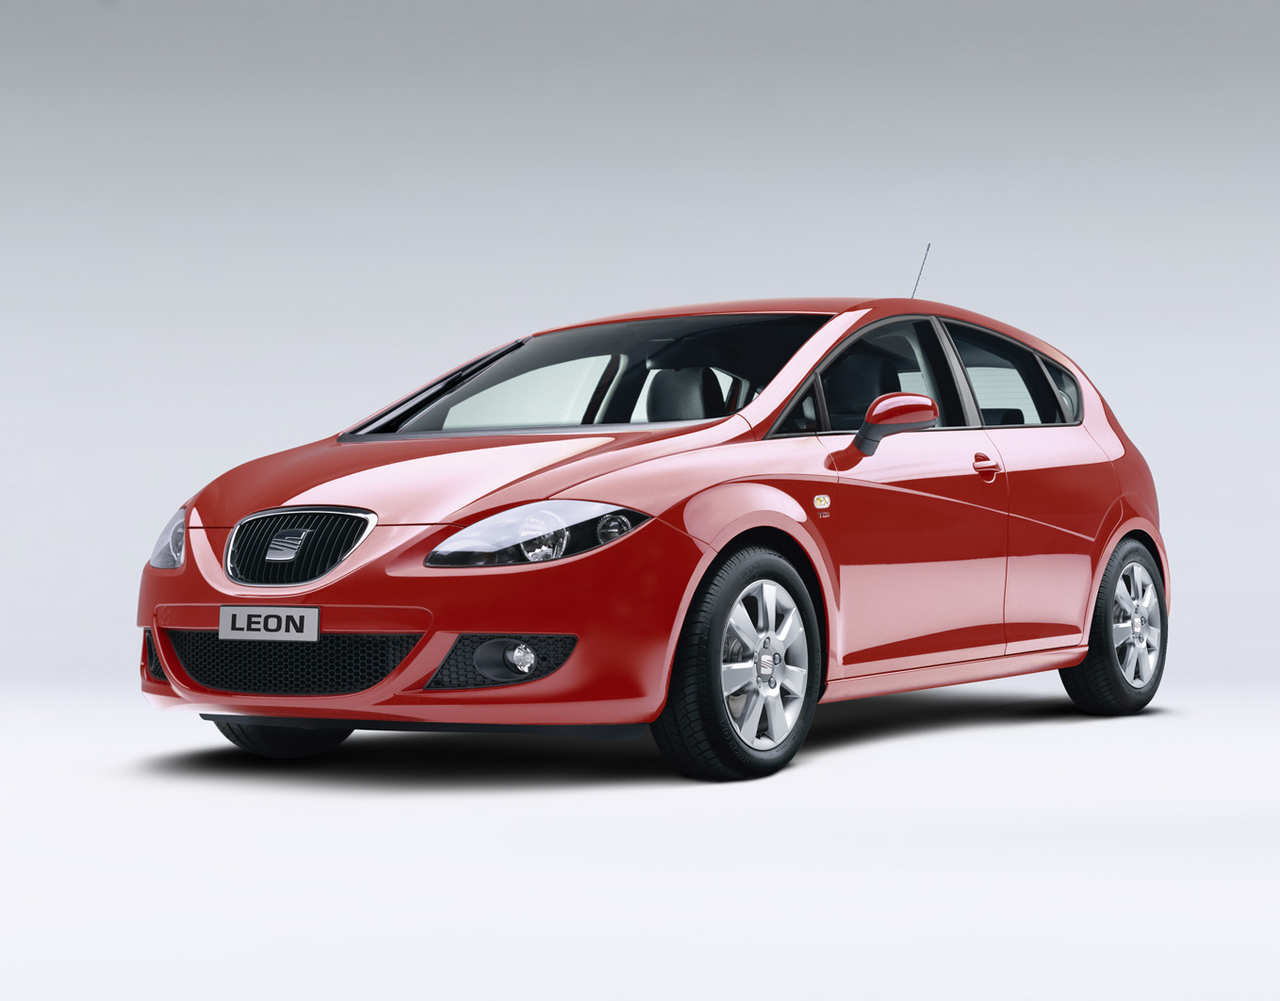 2009 seat leon photos 1 6 gasoline ff manual for sale. Black Bedroom Furniture Sets. Home Design Ideas